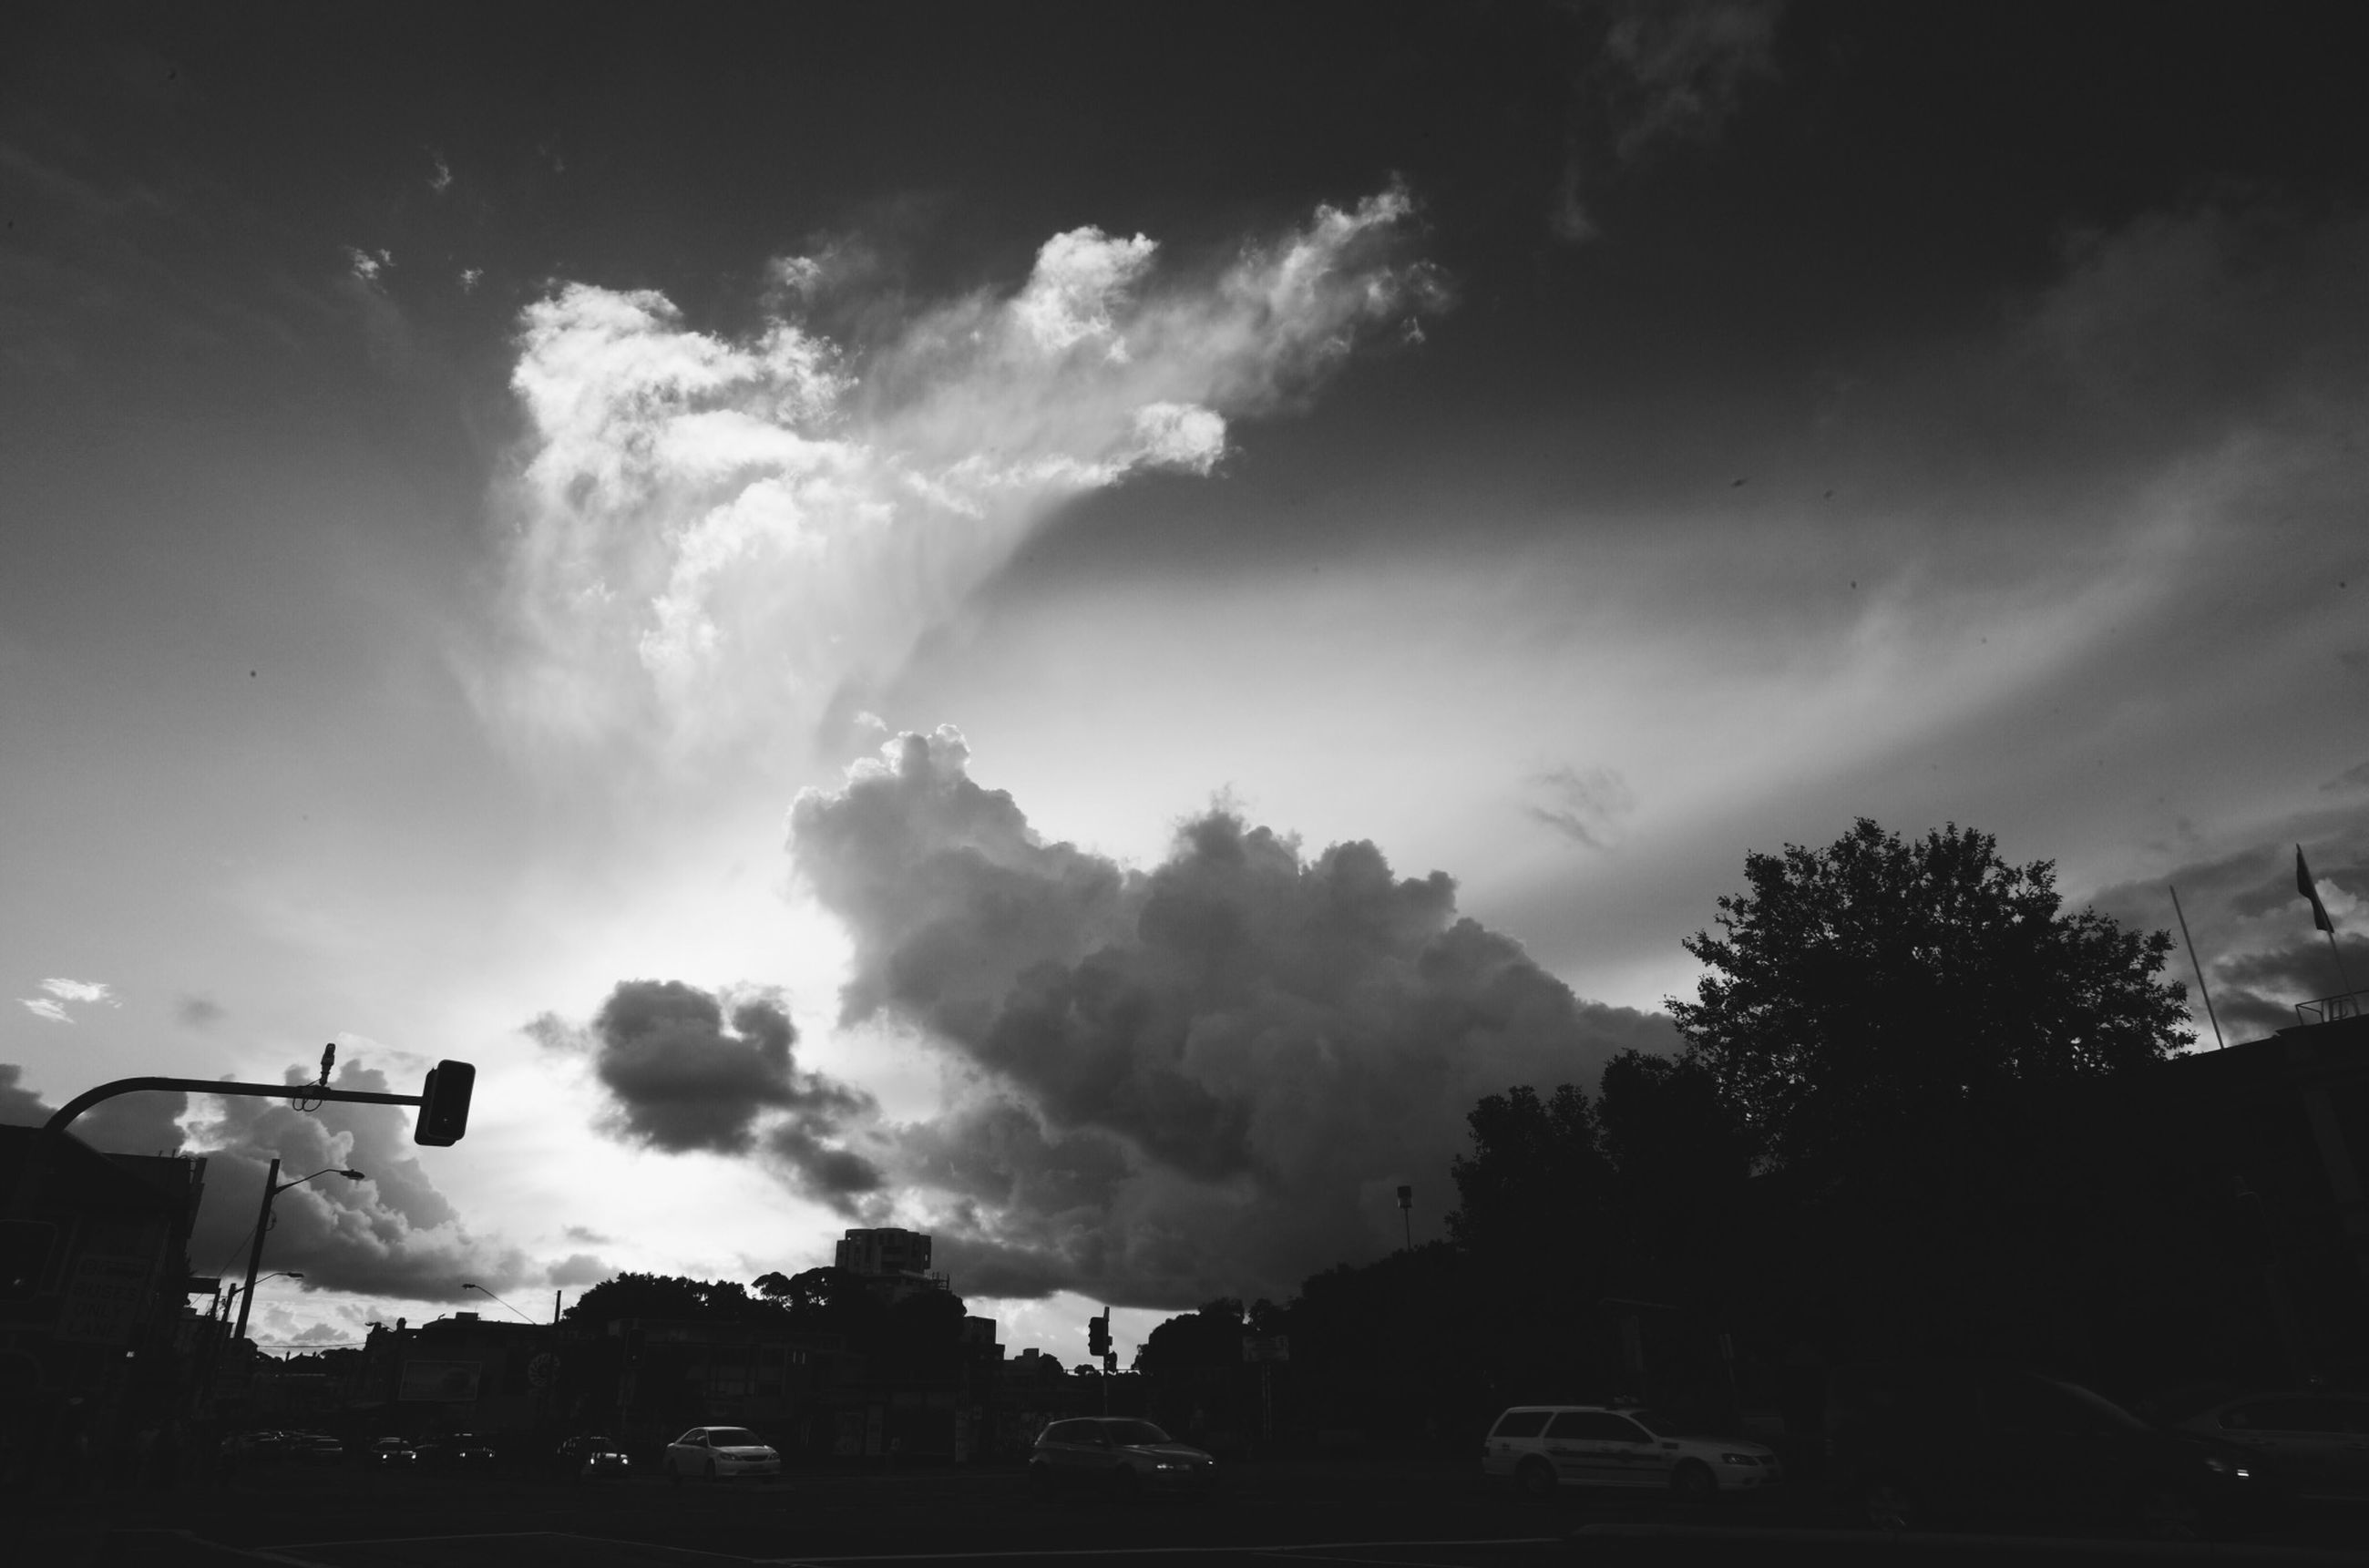 sky, building exterior, cloud - sky, built structure, architecture, low angle view, silhouette, cloudy, tree, transportation, street light, car, cloud, dusk, land vehicle, house, mode of transport, city, outdoors, overcast